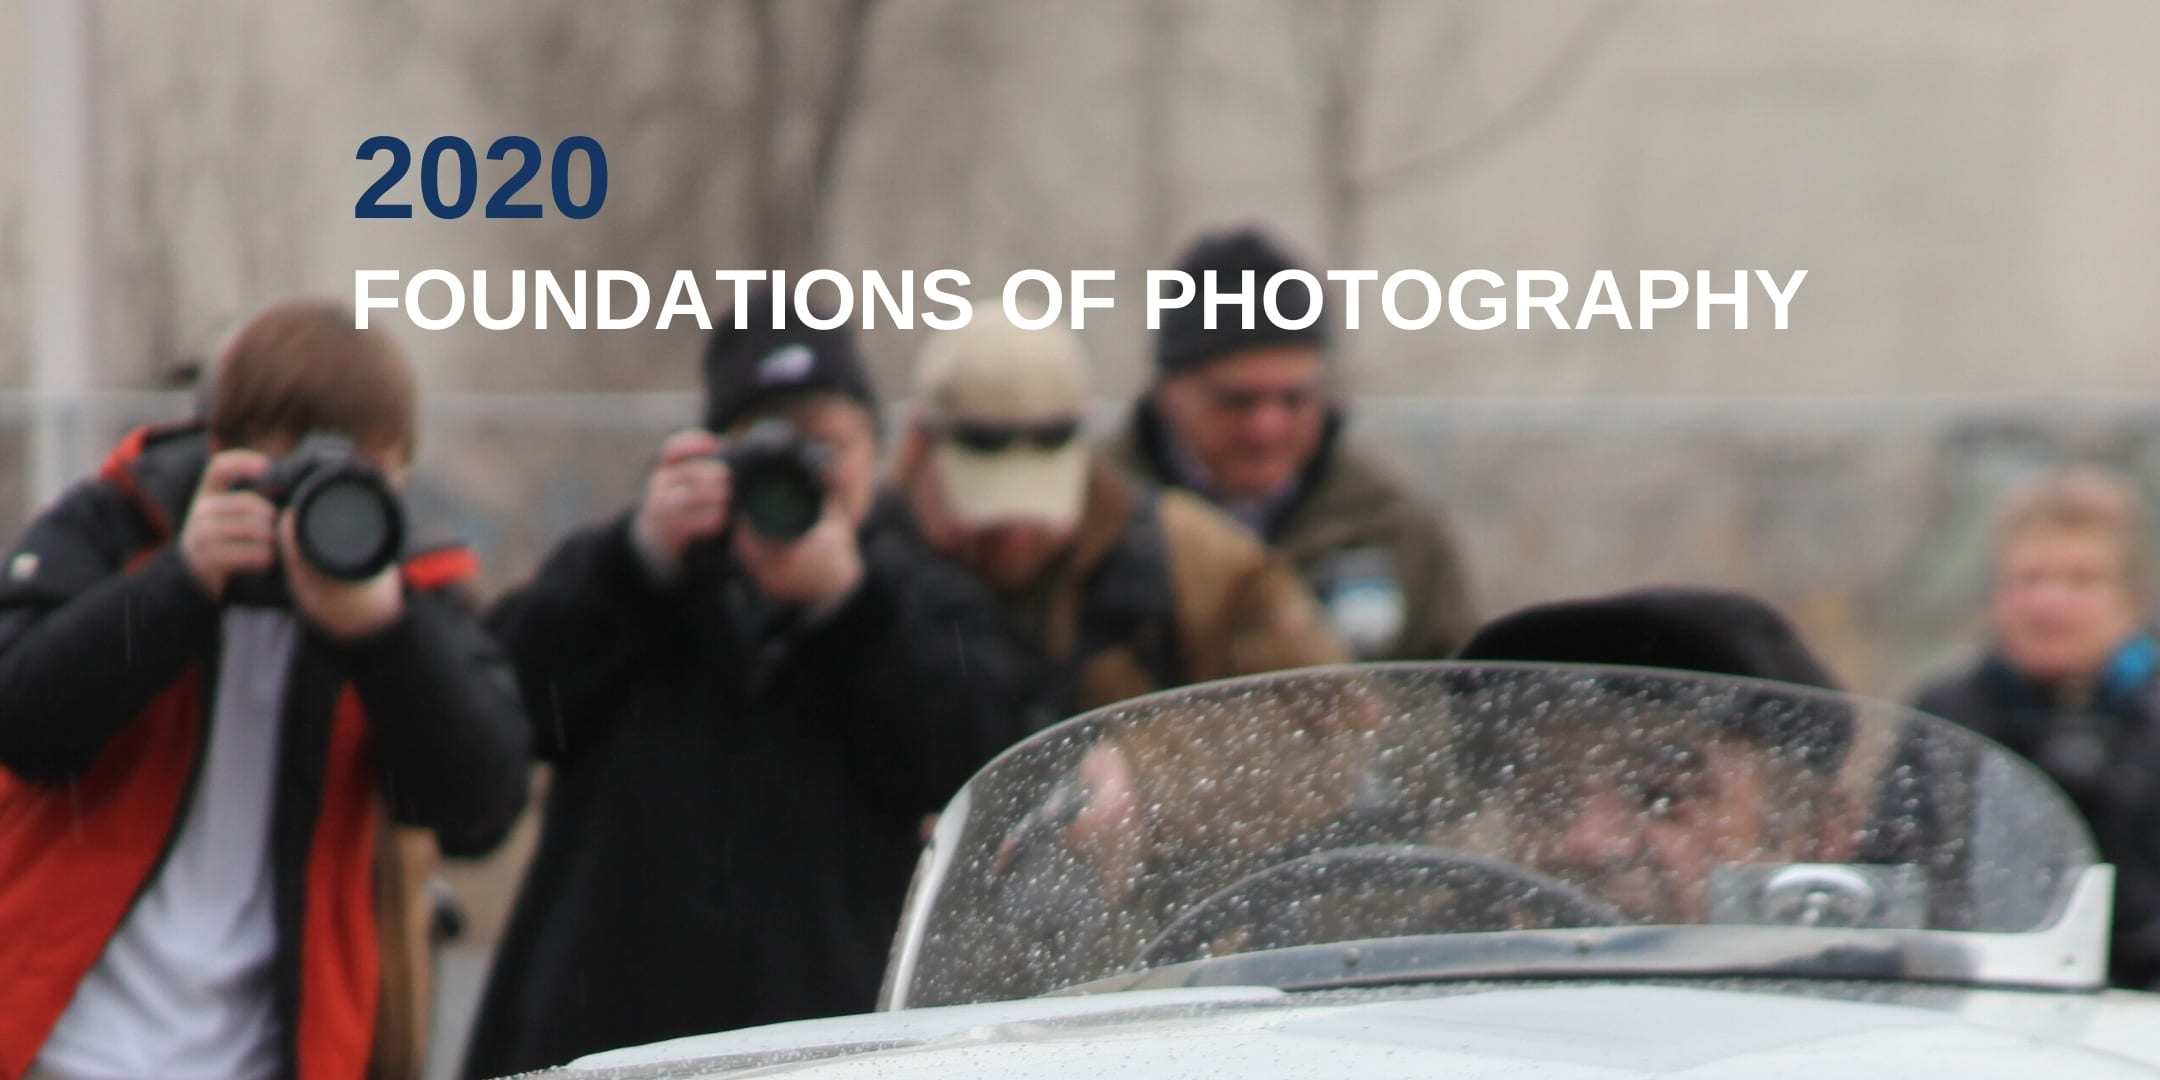 Foundations of Photography 2020 Header 1